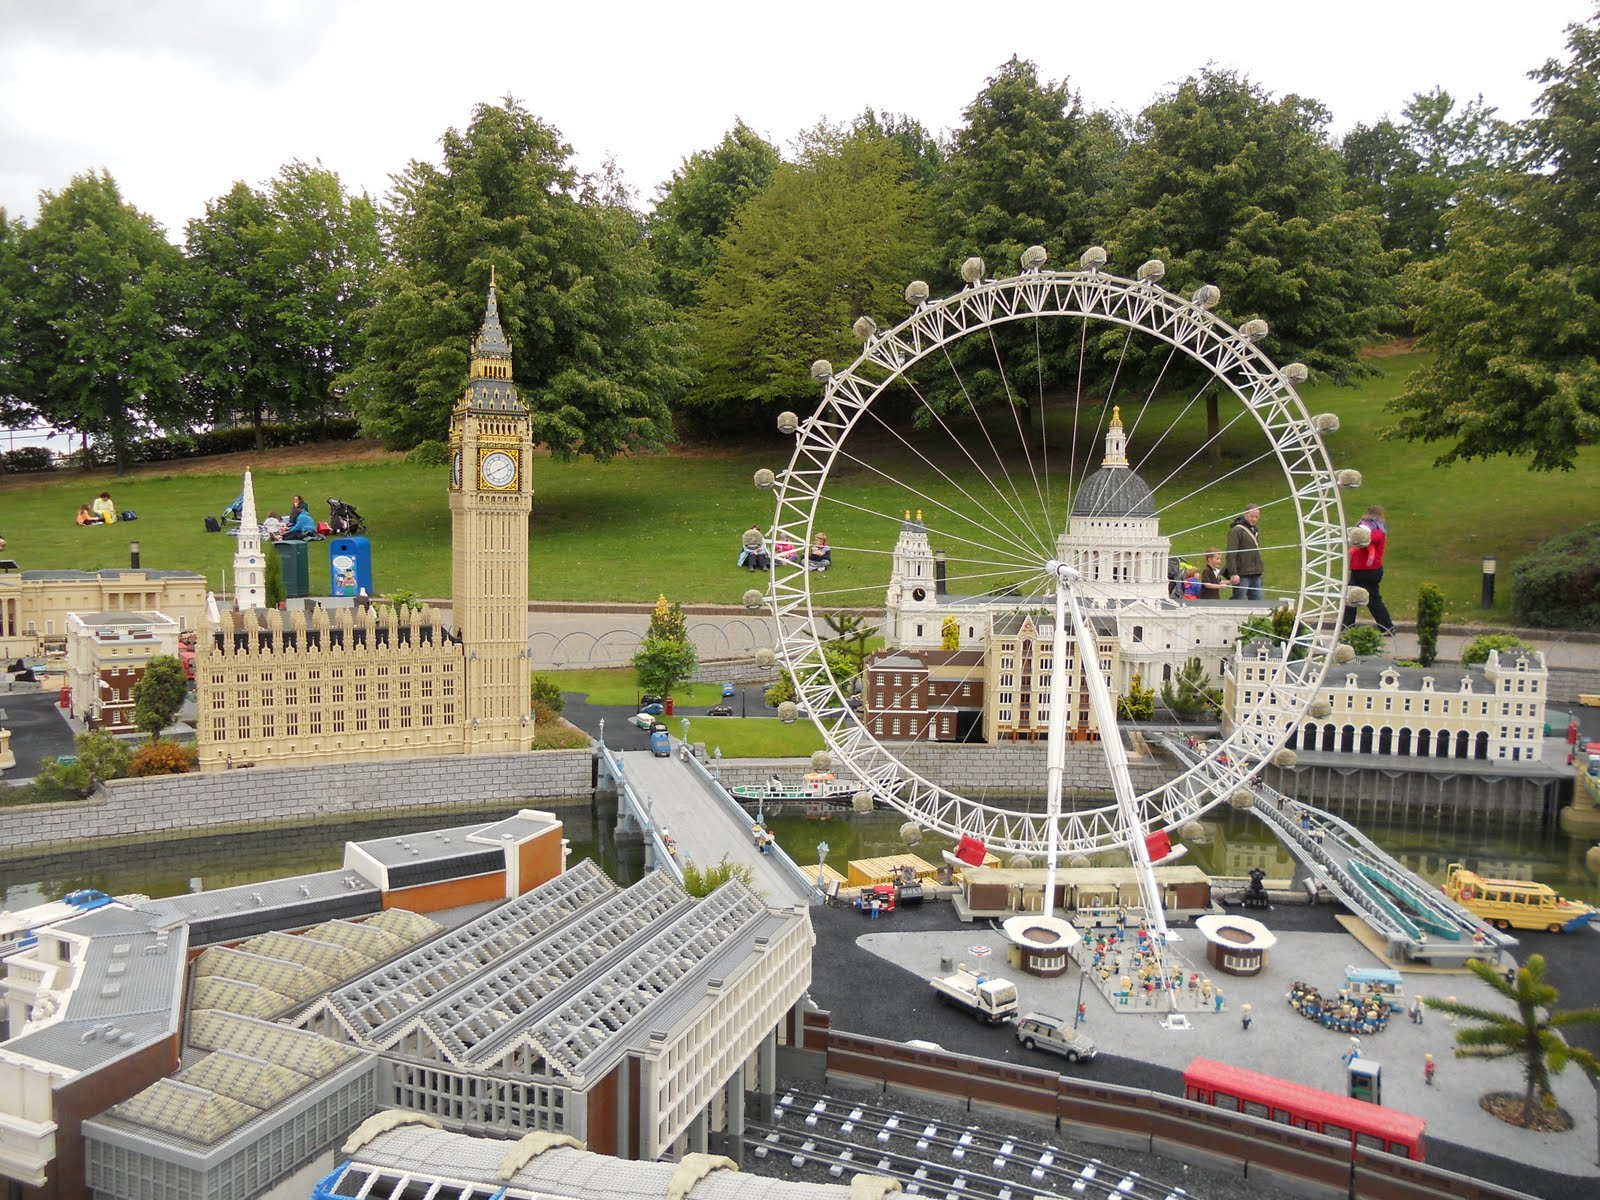 Lawrence and Alison in England: Legoland, Windsor